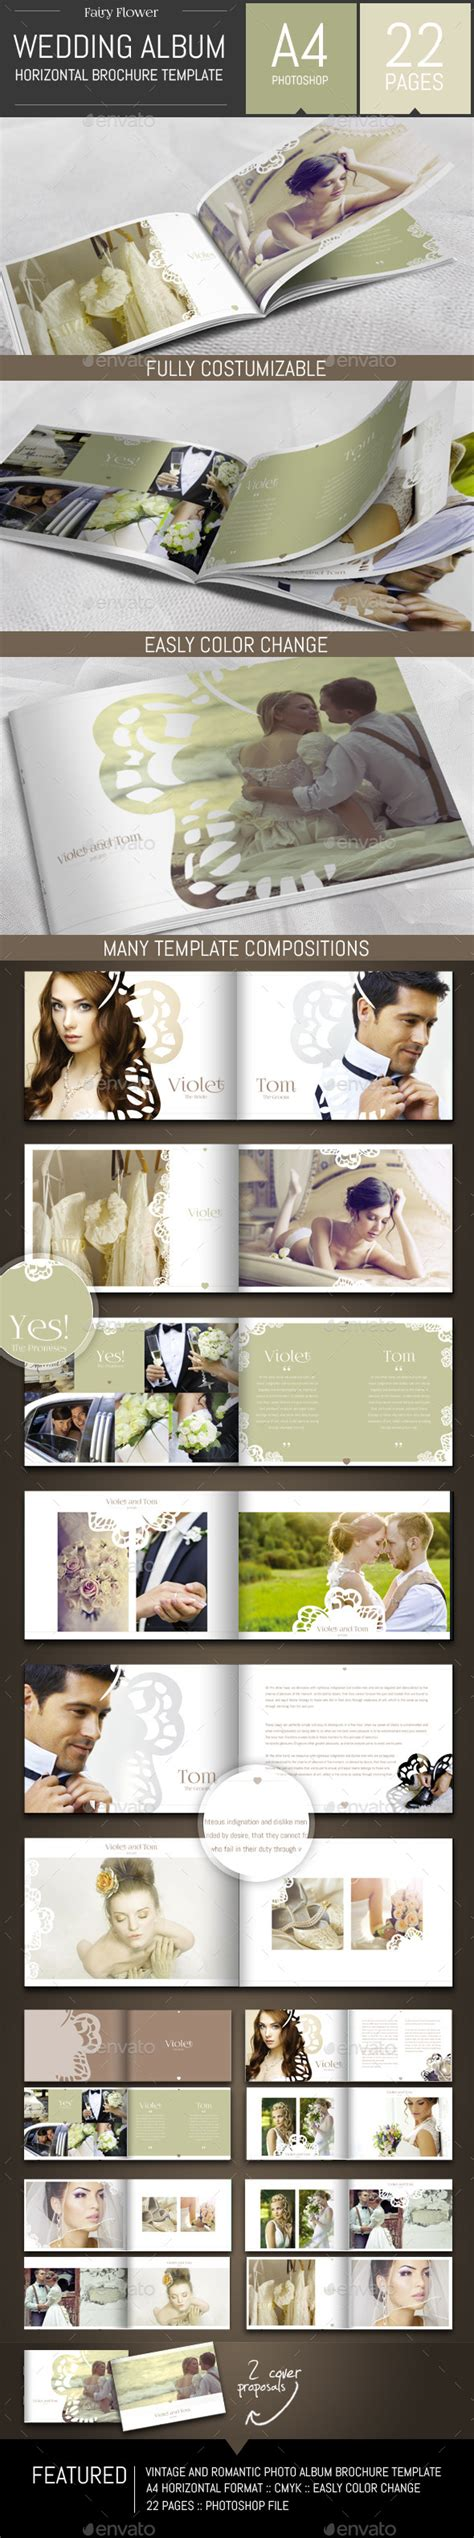 Wedding Photo Album Horizontal Brochure Template by Wedding Photo Album Horizontal Brochure Template Photo